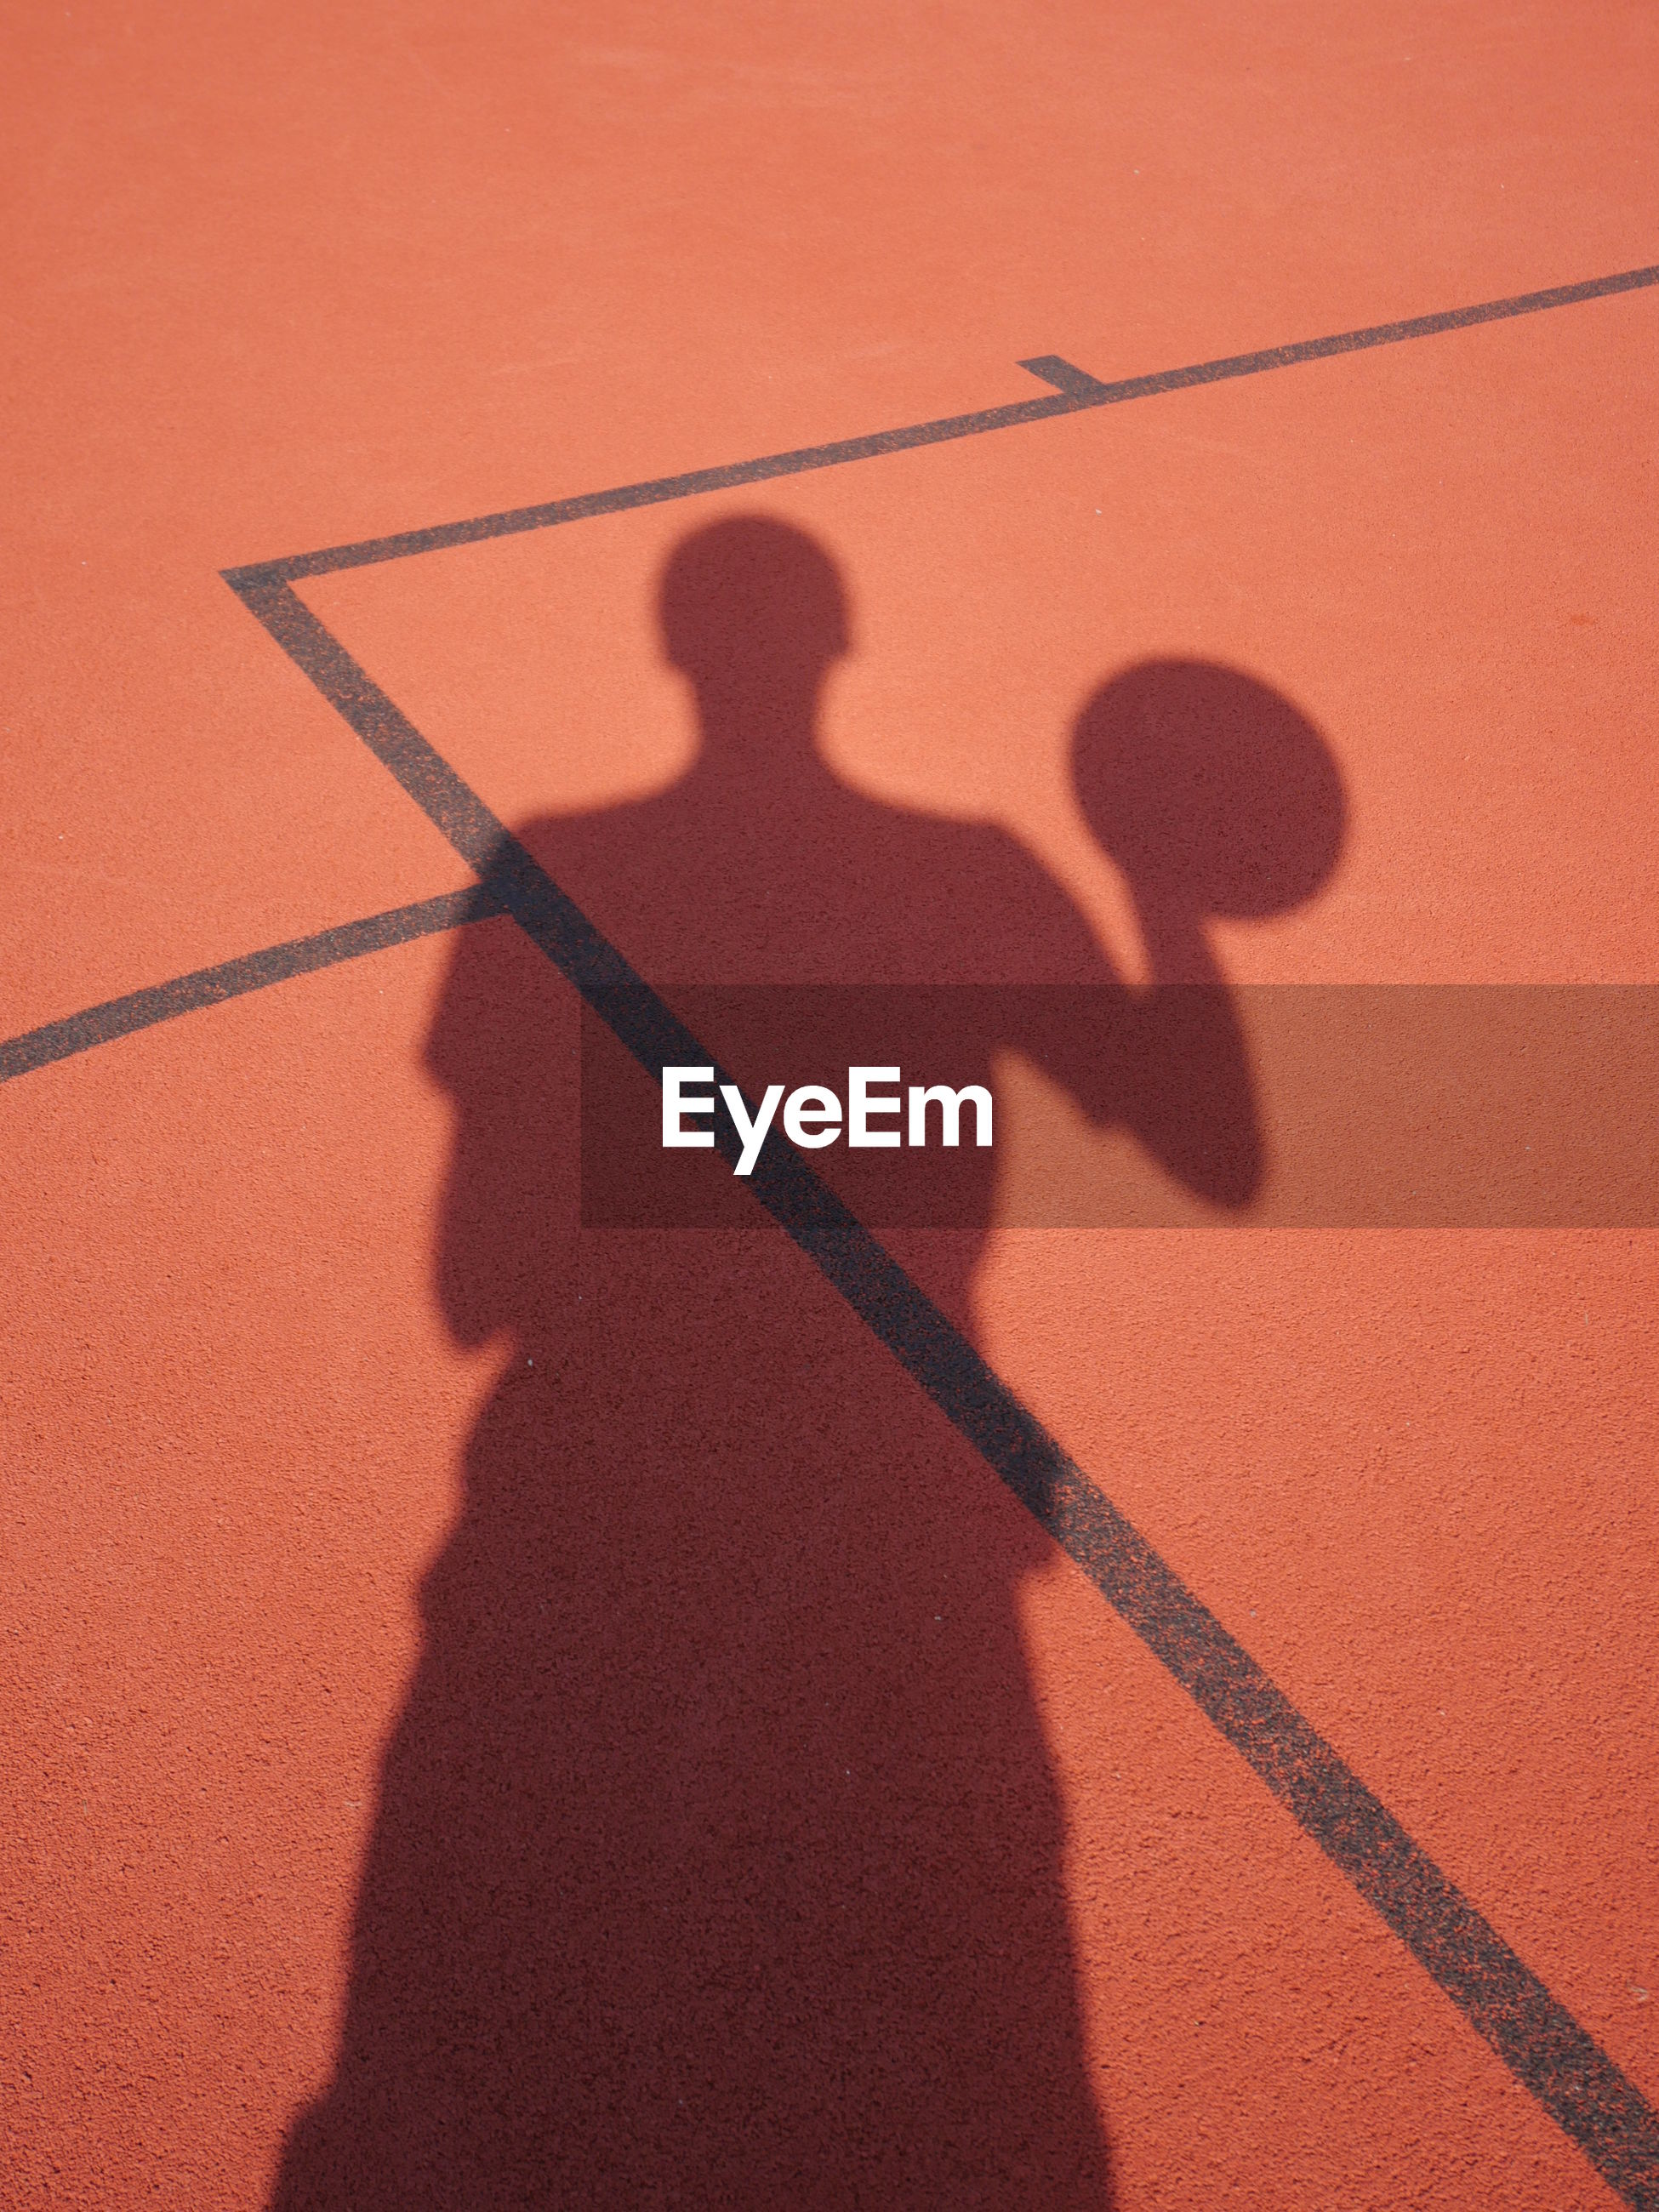 Shadow of player on basket ball court